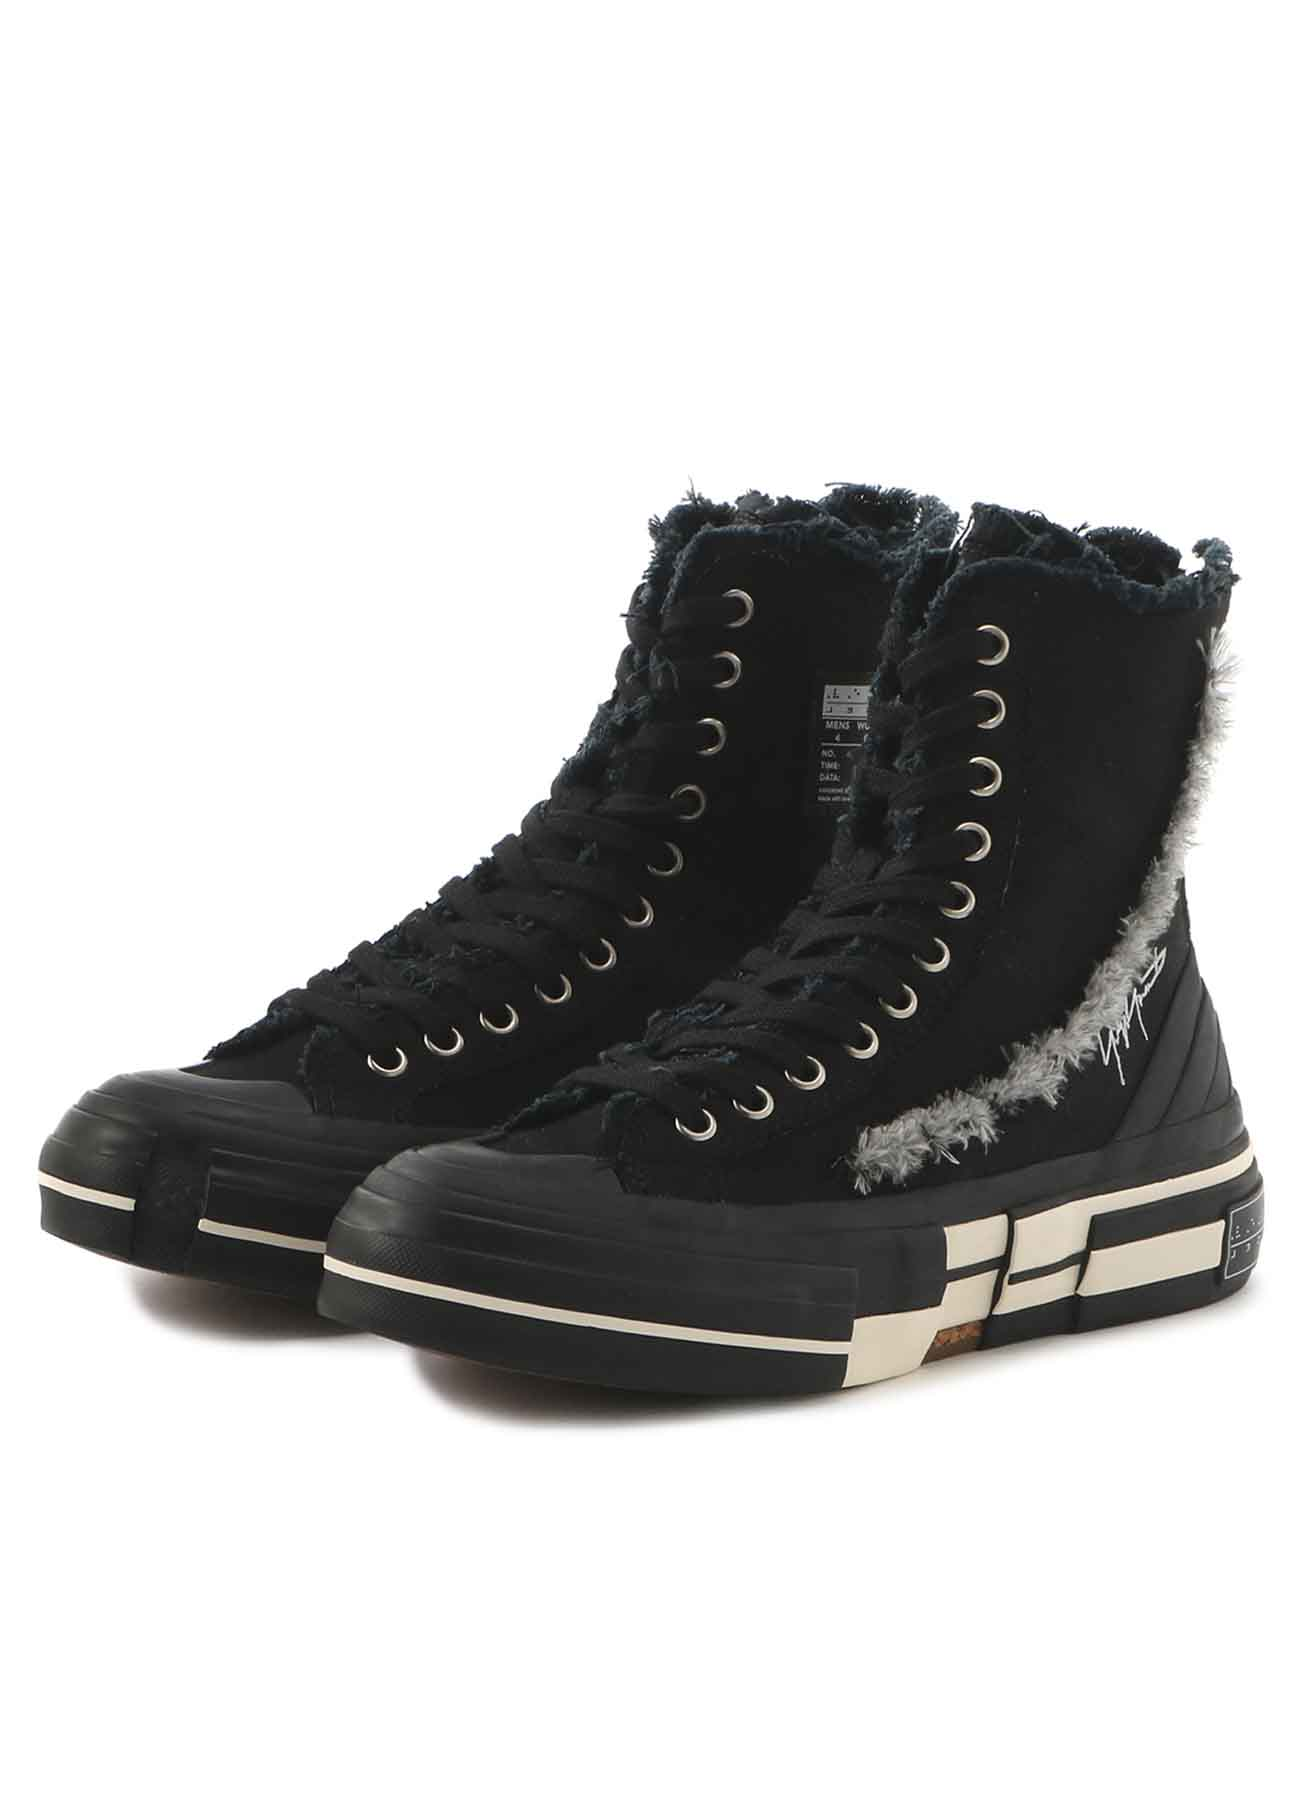 W/GABARDINE BK SLASH HIGH TOP SNEAKERS BK